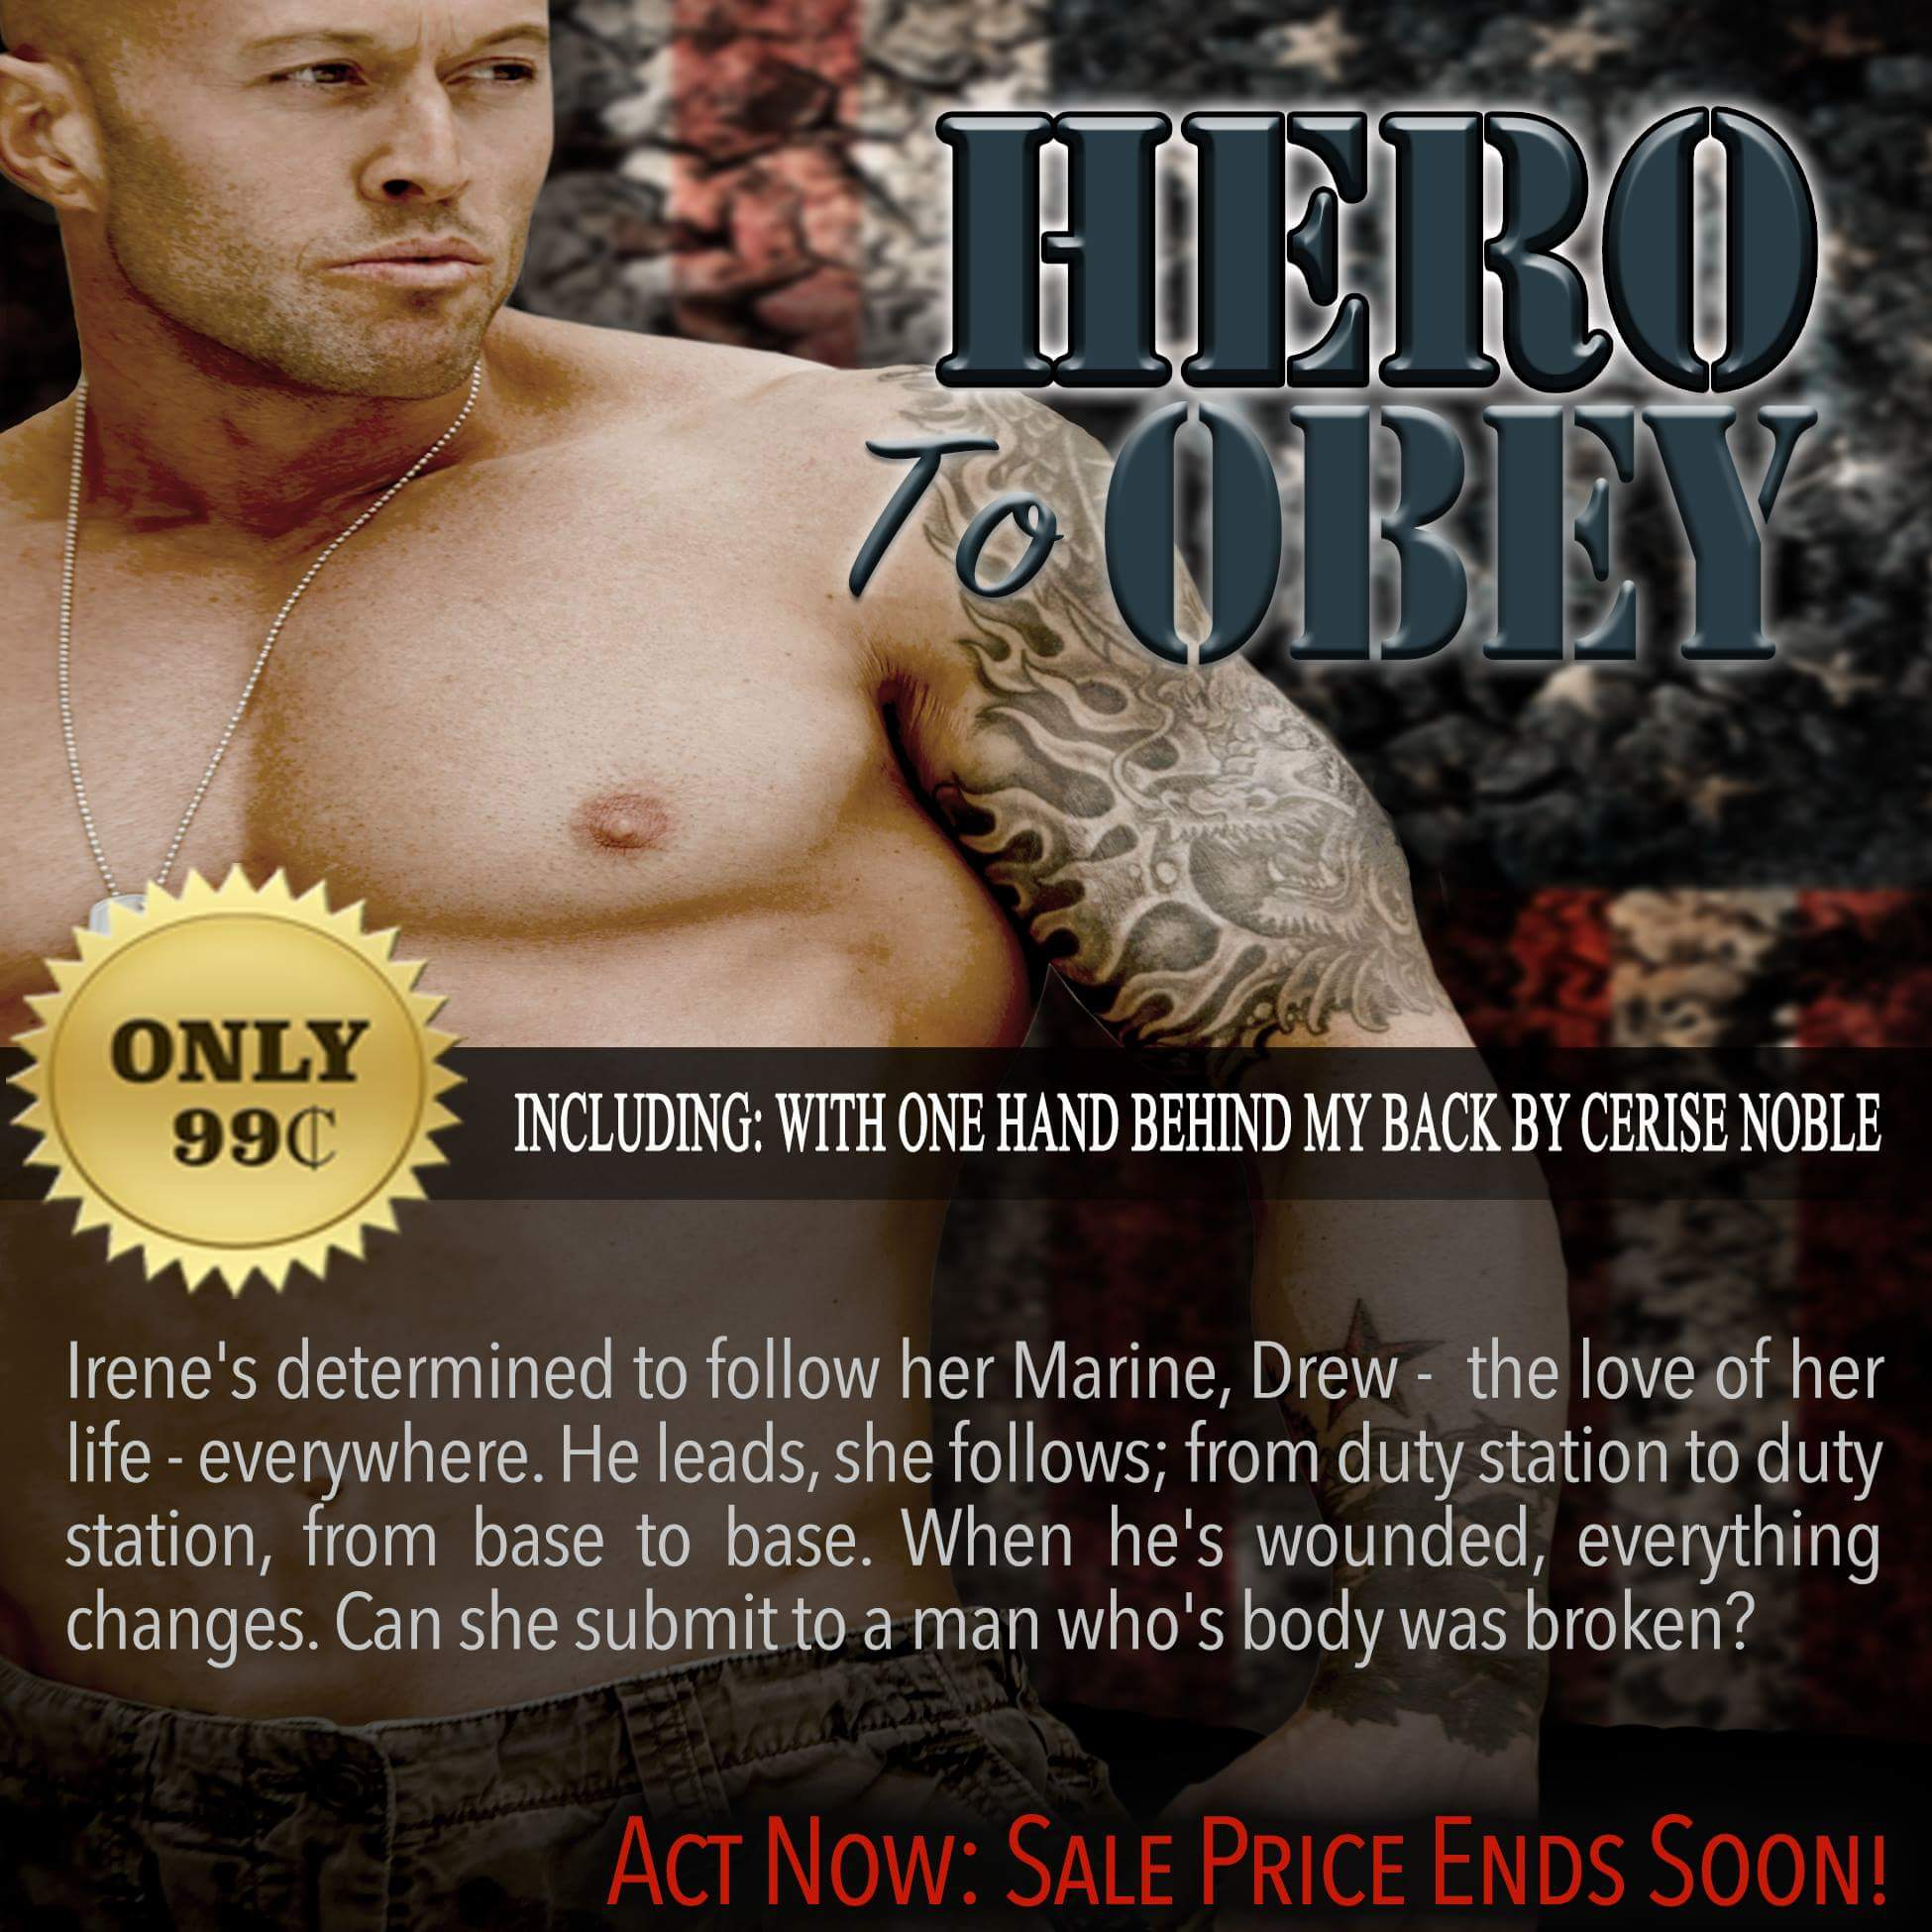 Hero To Obey Book Cover Model Actor John Joseph Quinlan by Cerise Noble #JohnQuinlan #Hero2obey